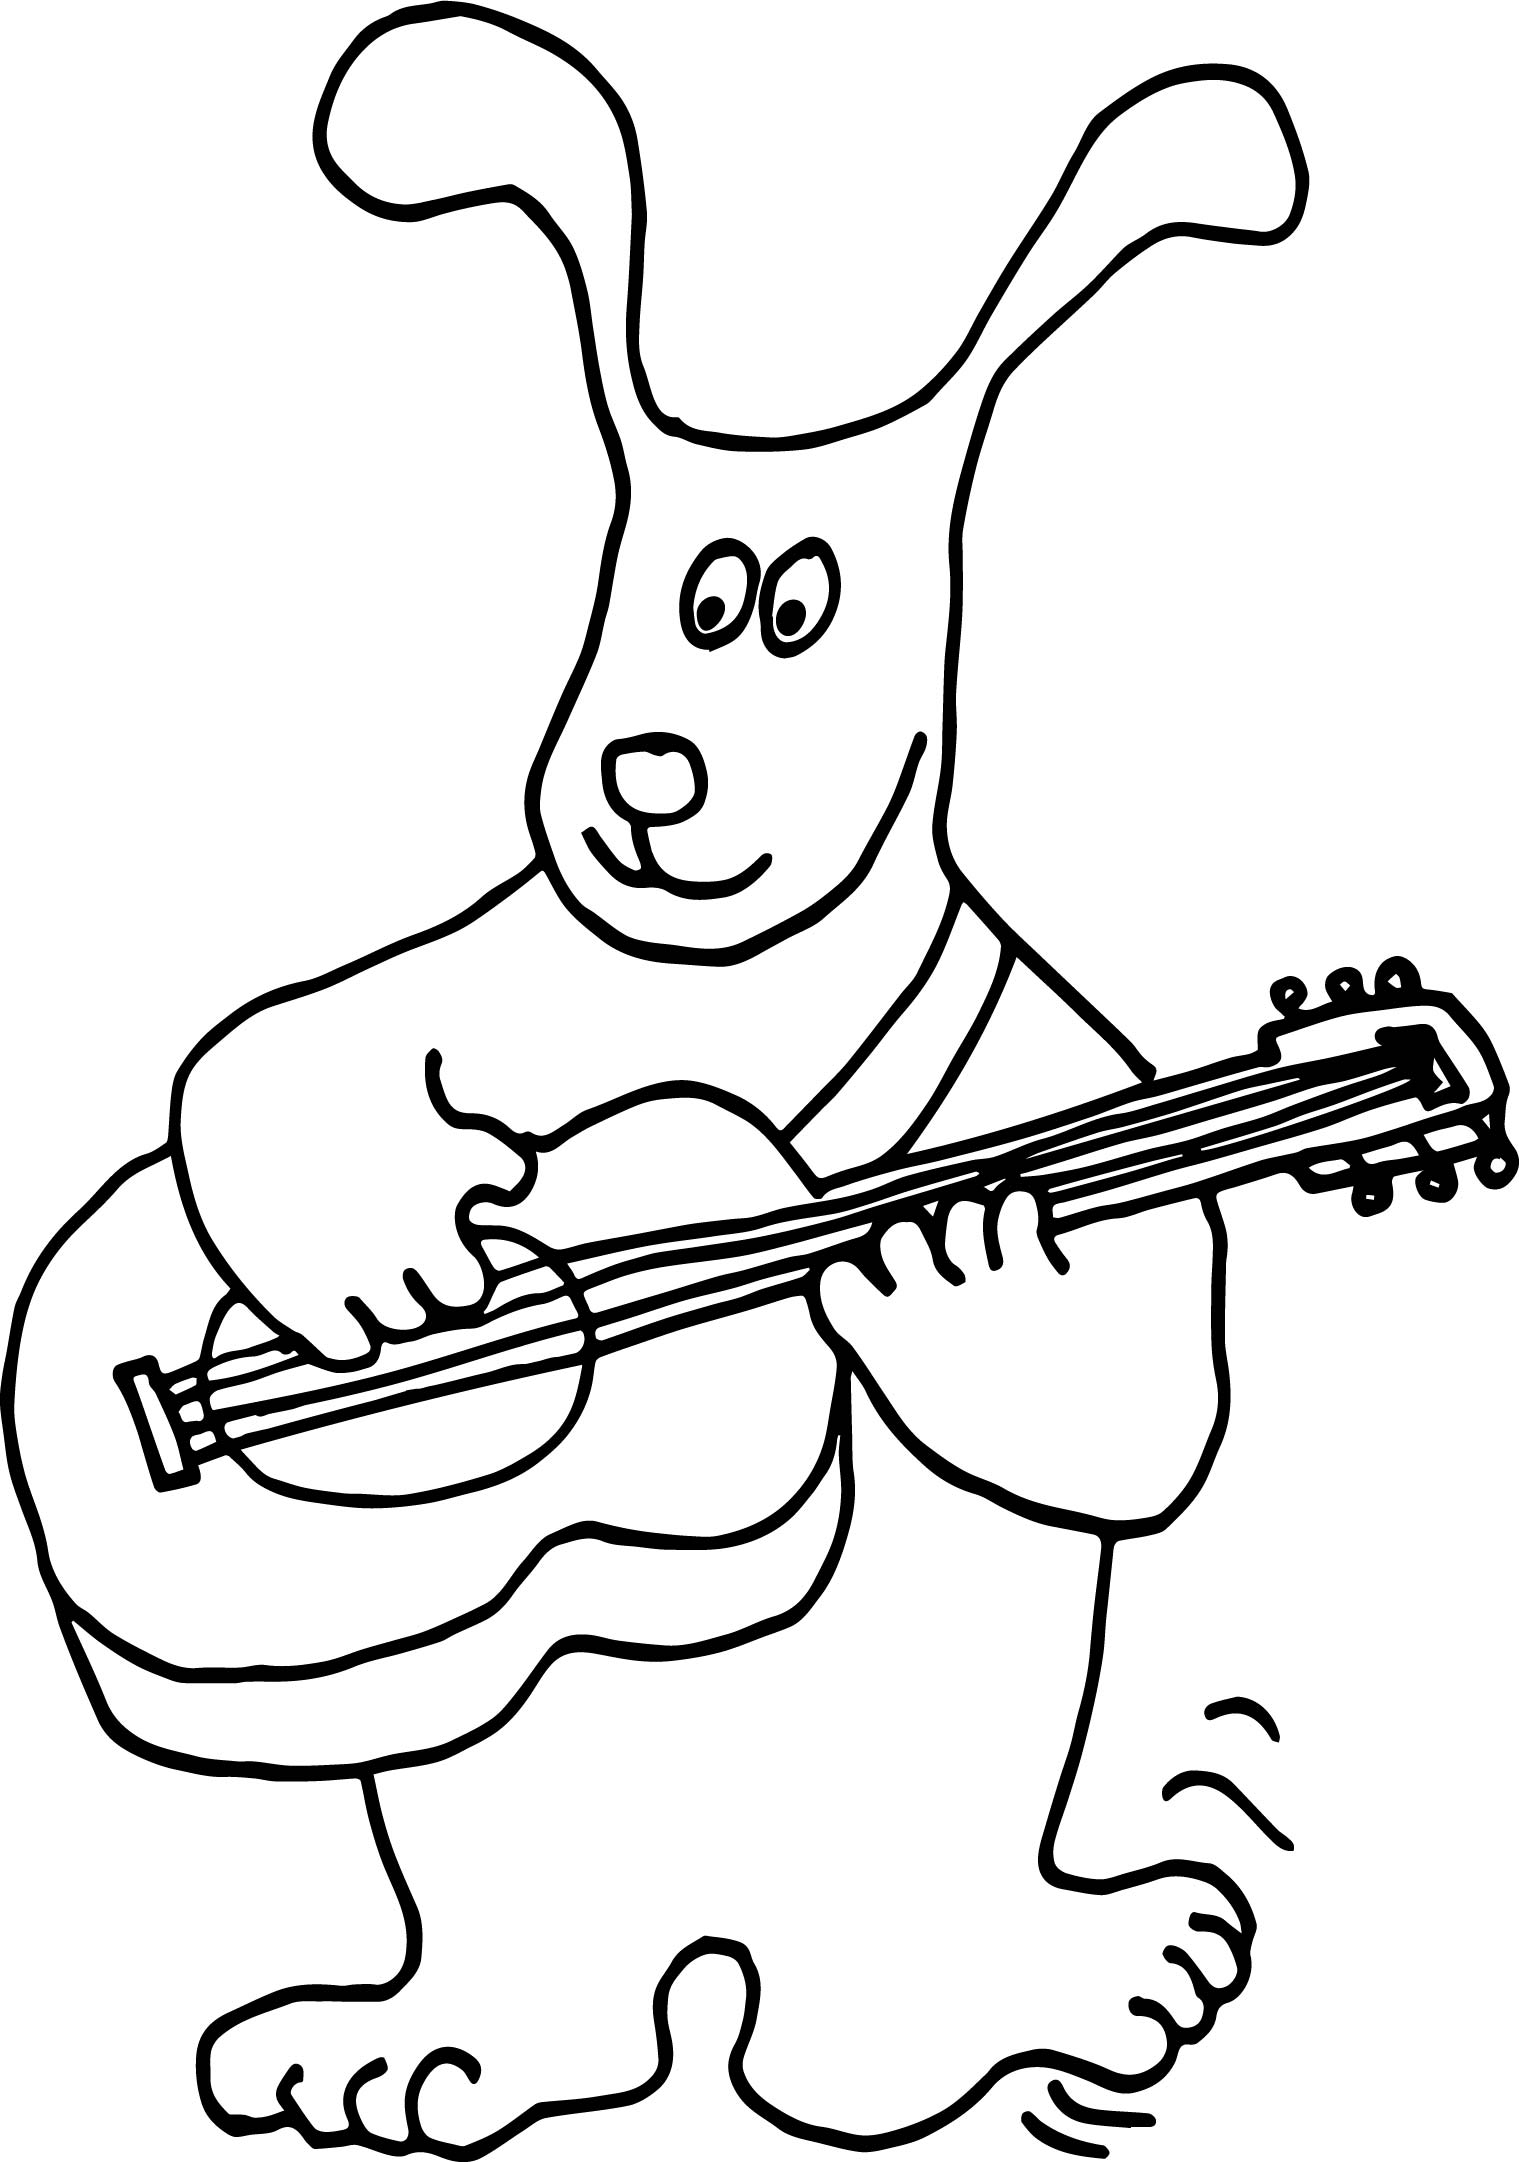 Dog Playing The Guitar Coloring Page | Wecoloringpage.com